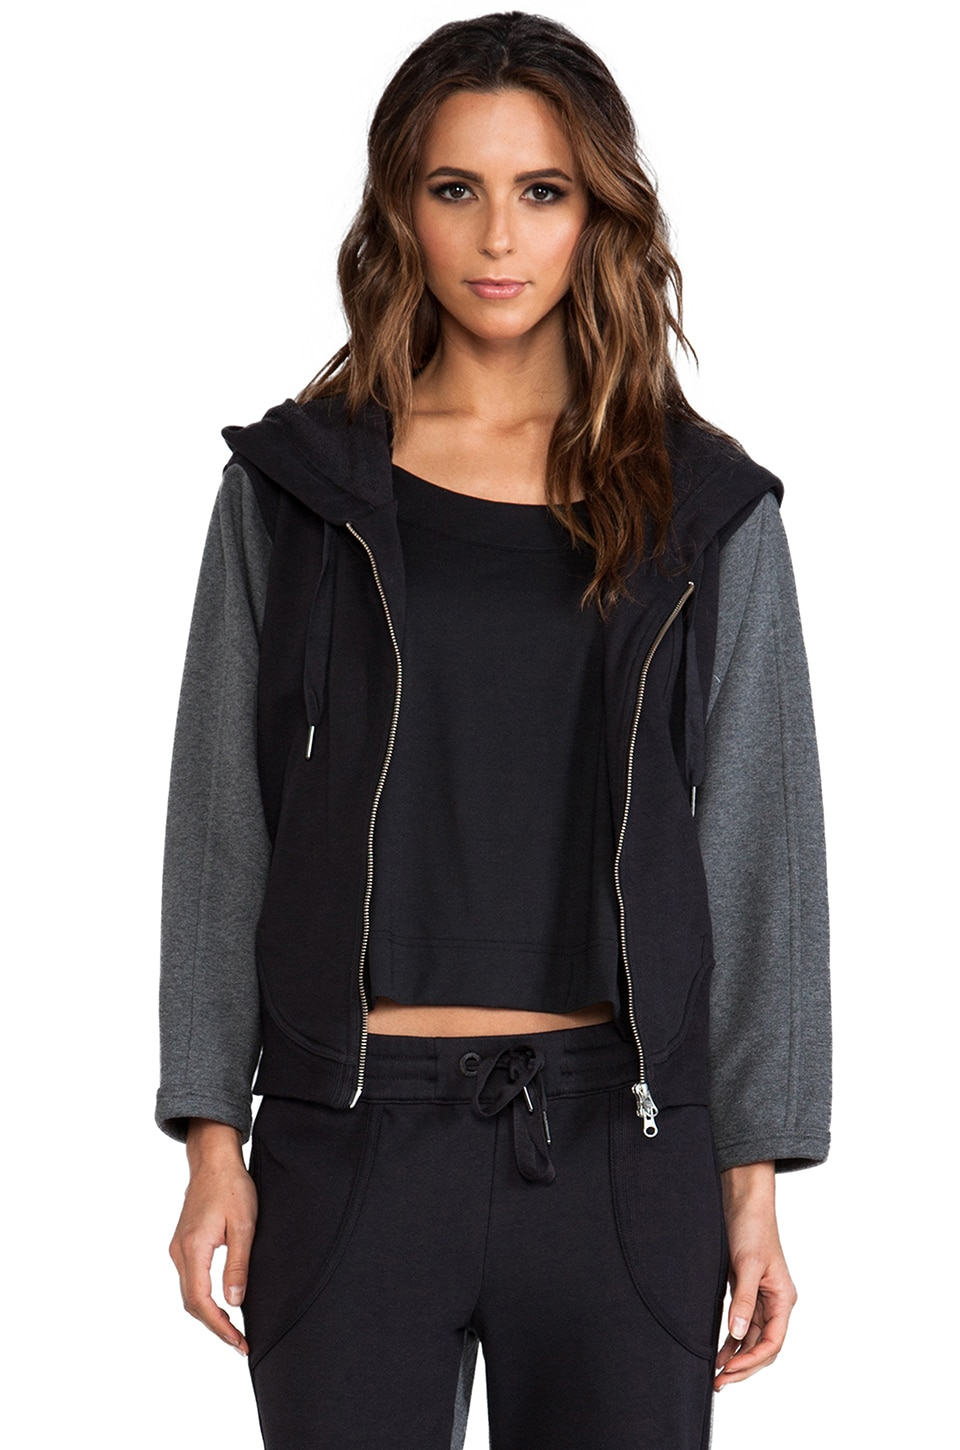 adidas by Stella McCartney ESS Hoodie in Black